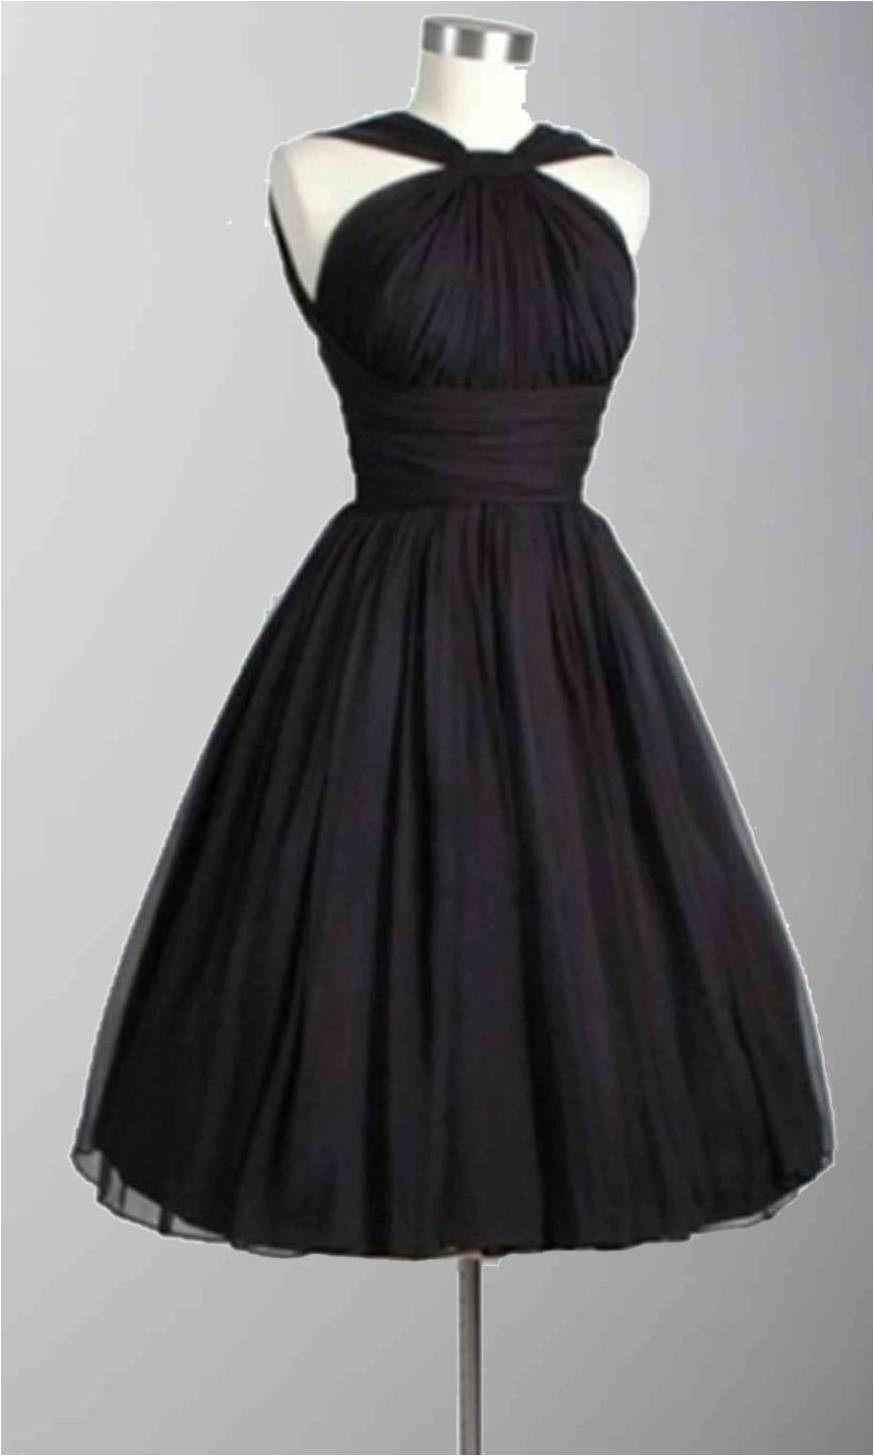 Black Halter Ruching Waist Short Cocktail Dresses KSP309 [KSP309] - £83.00 : Cheap Prom Dresses Uk, Bridesmaid Dresses, 2014 Prom & Evening Dresses, Look for cheap elegant prom dresses 2014, cocktail gowns, or dresses for special occasions? kissprom.co.uk offers various bridesmaid dresses, evening dress, free shipping to UK etc.